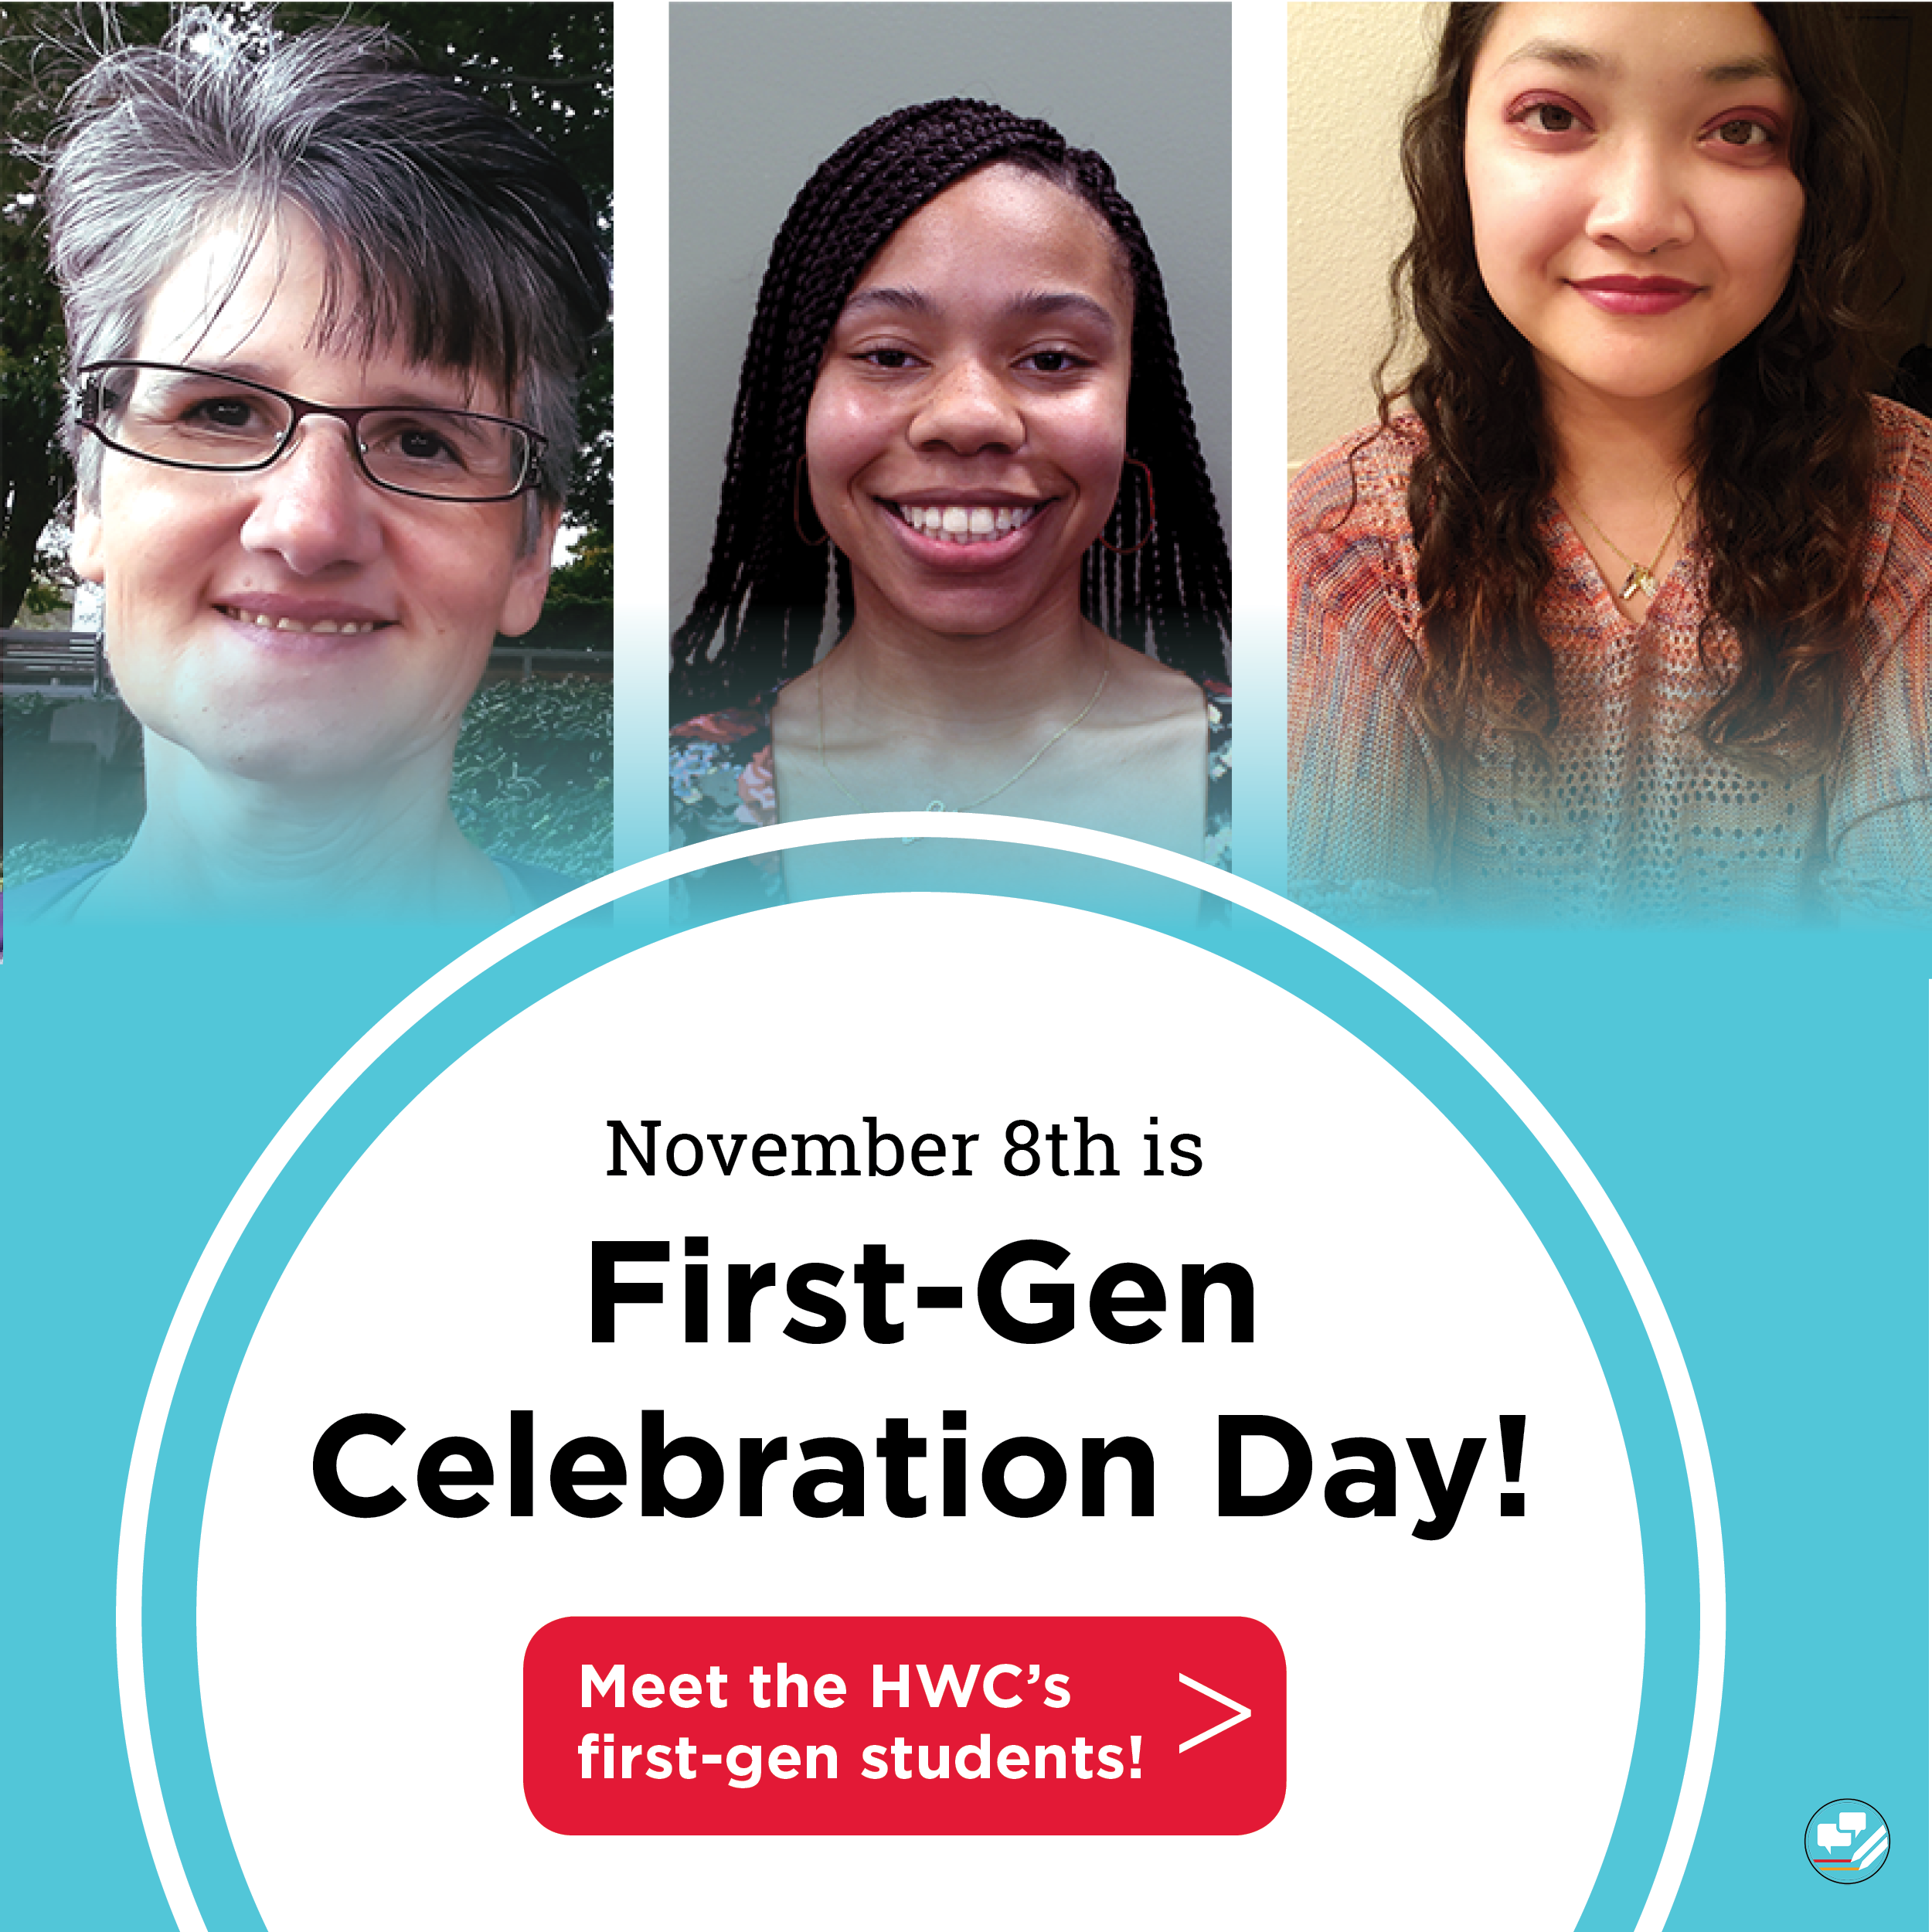 November 8th is First-Gen Celebration Day! Meet the HWC's first-gen students!